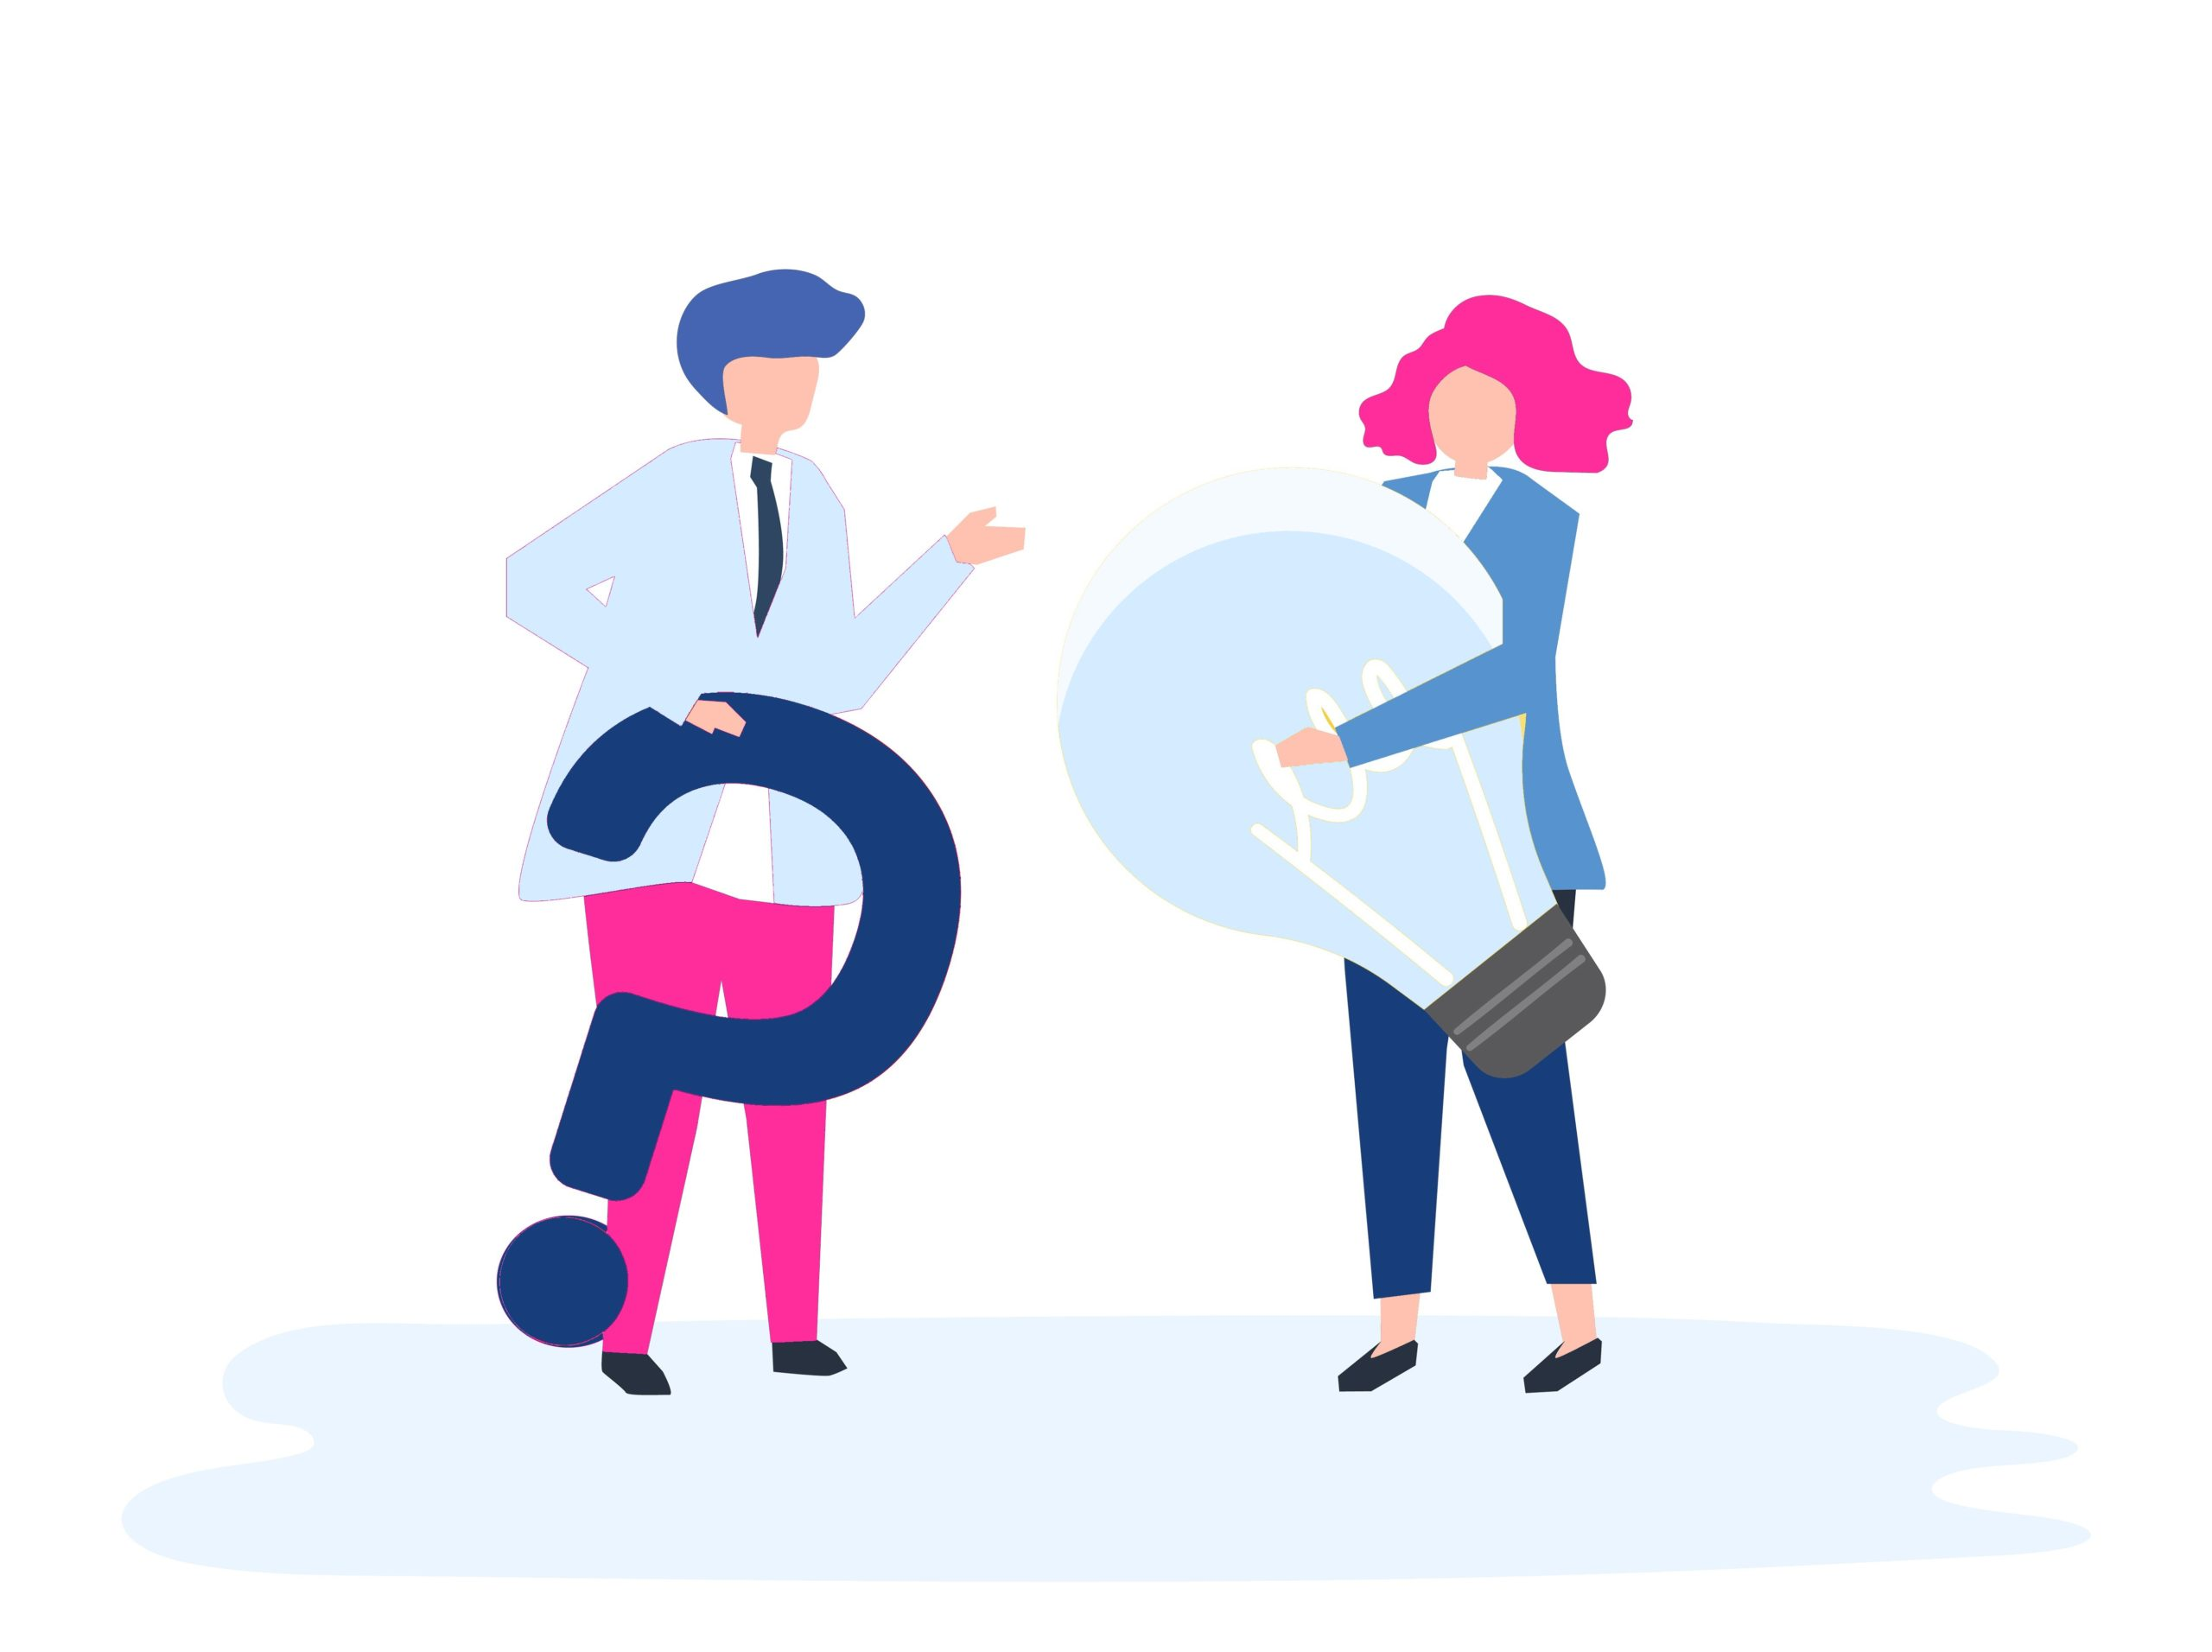 Illustration of people avatar business plan concept